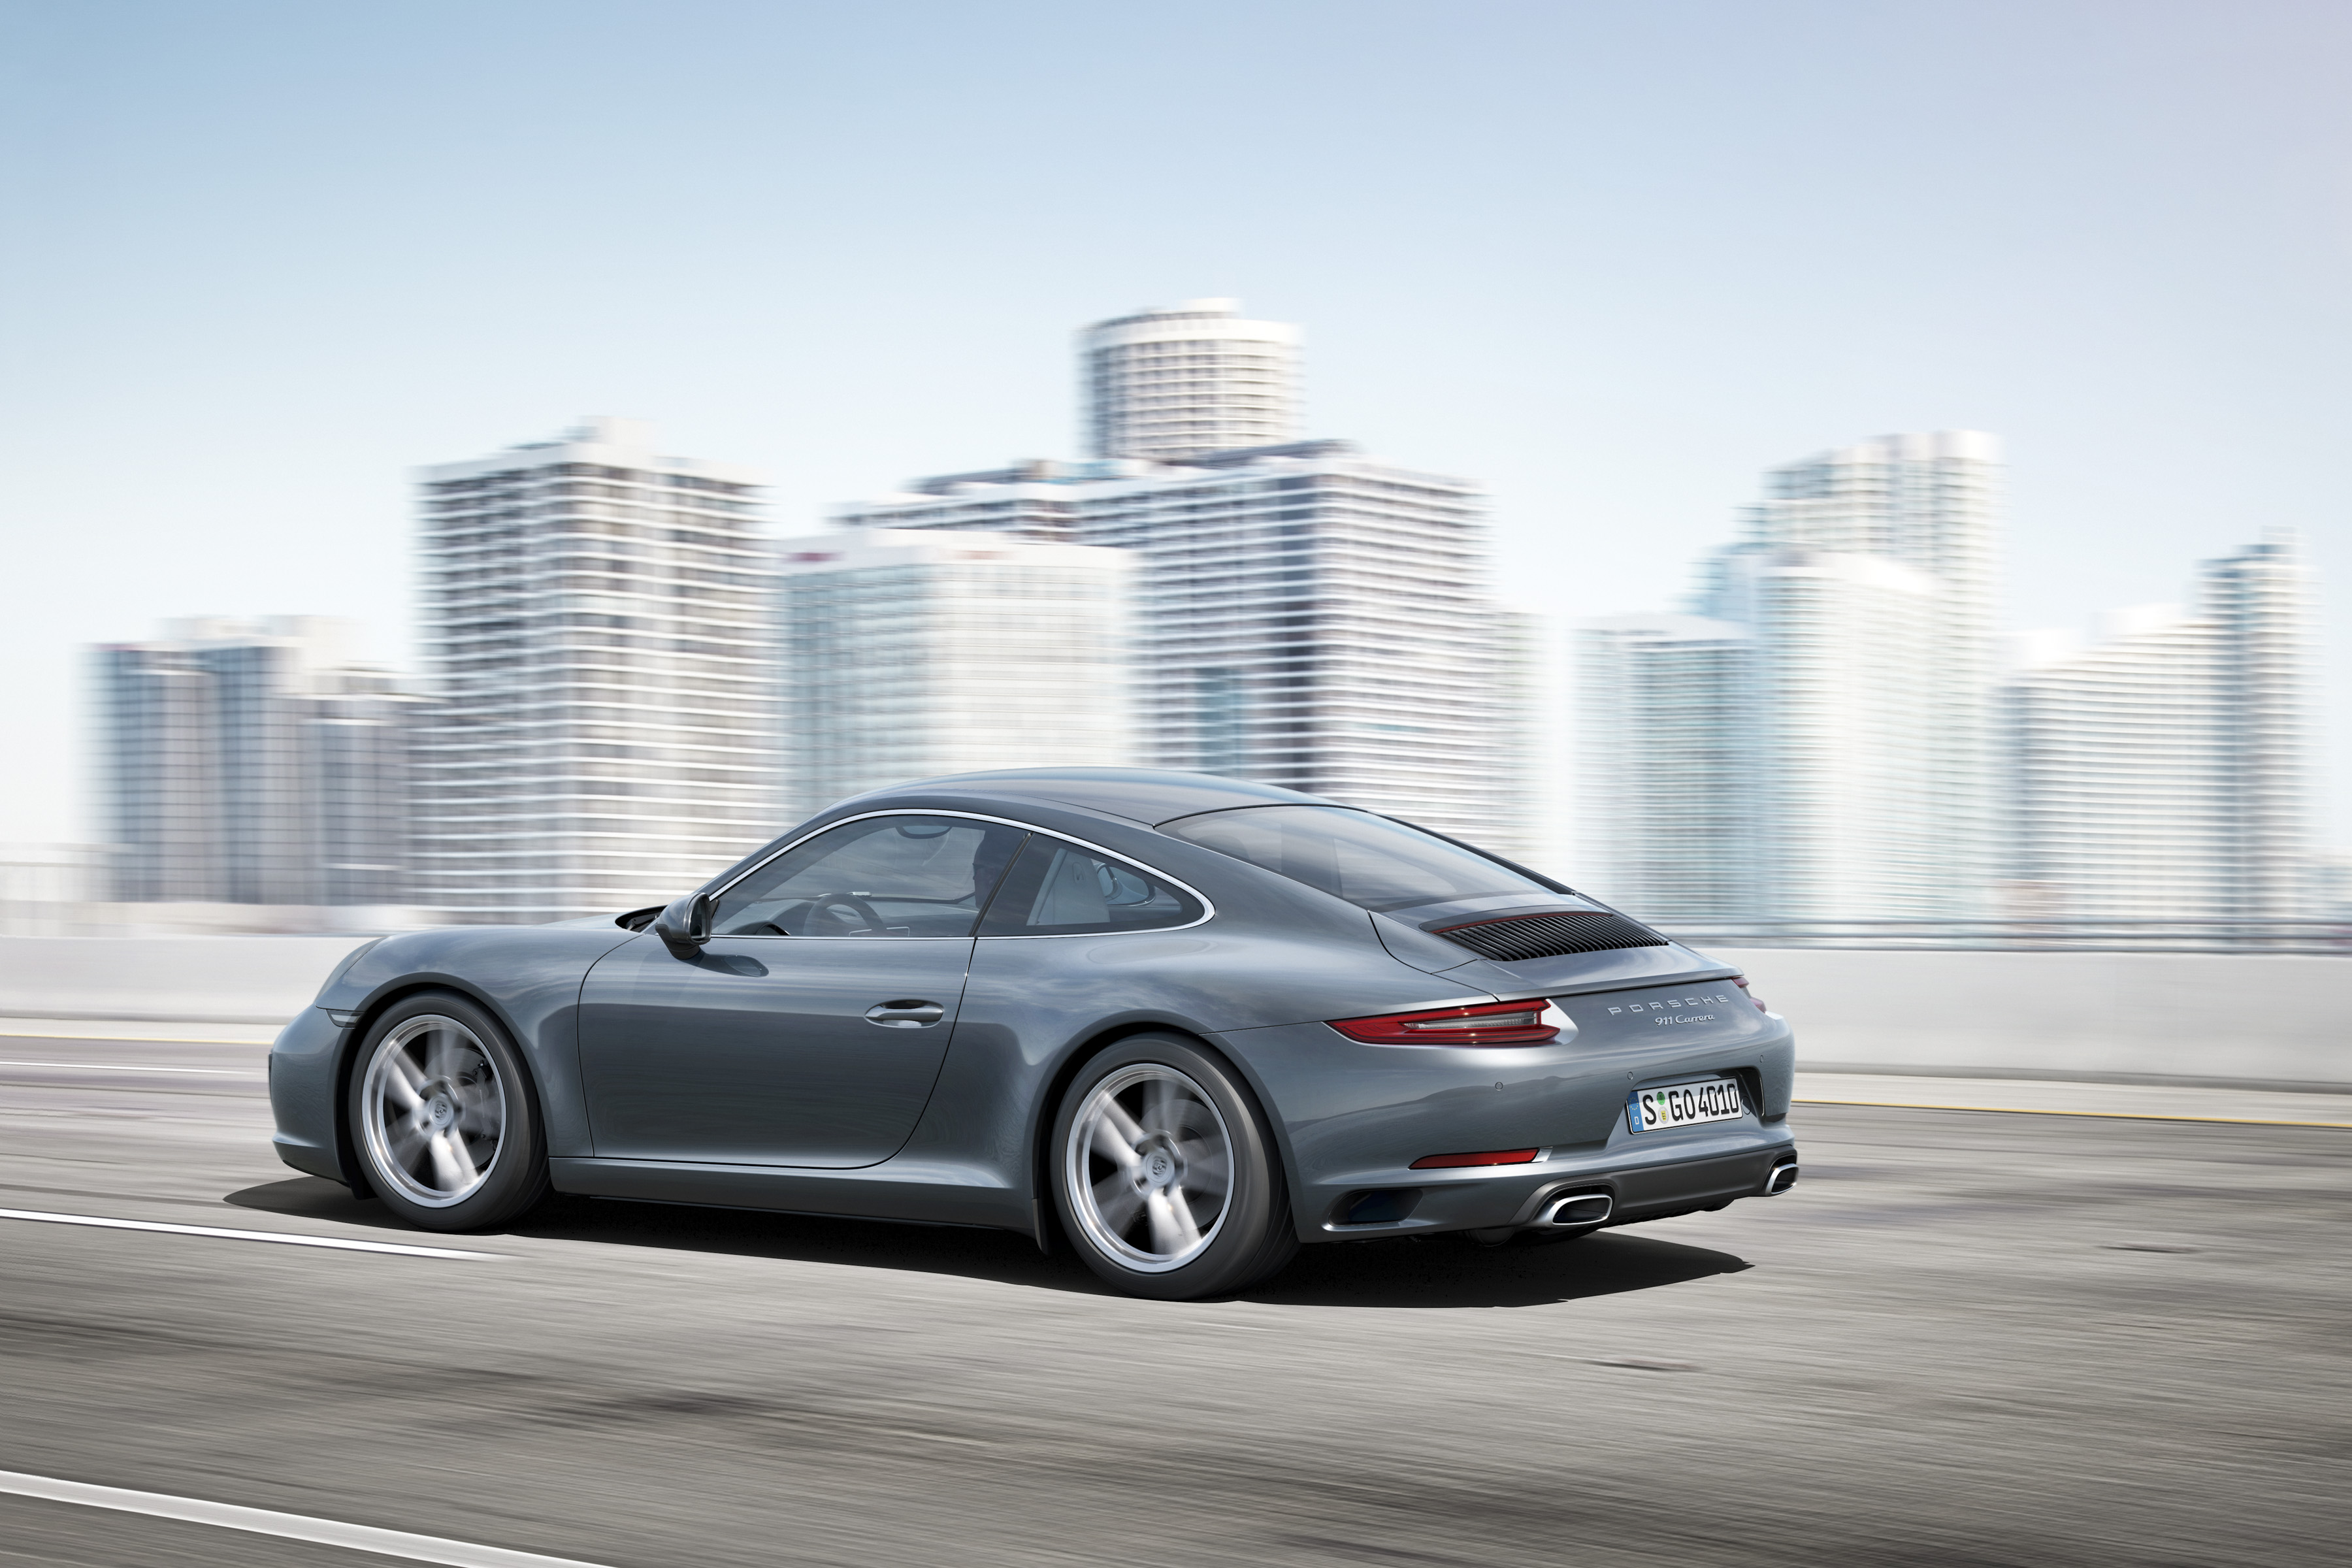 The 2017 Porsche 911 Carrera coupe will be shown at the San Diego Auto Show.